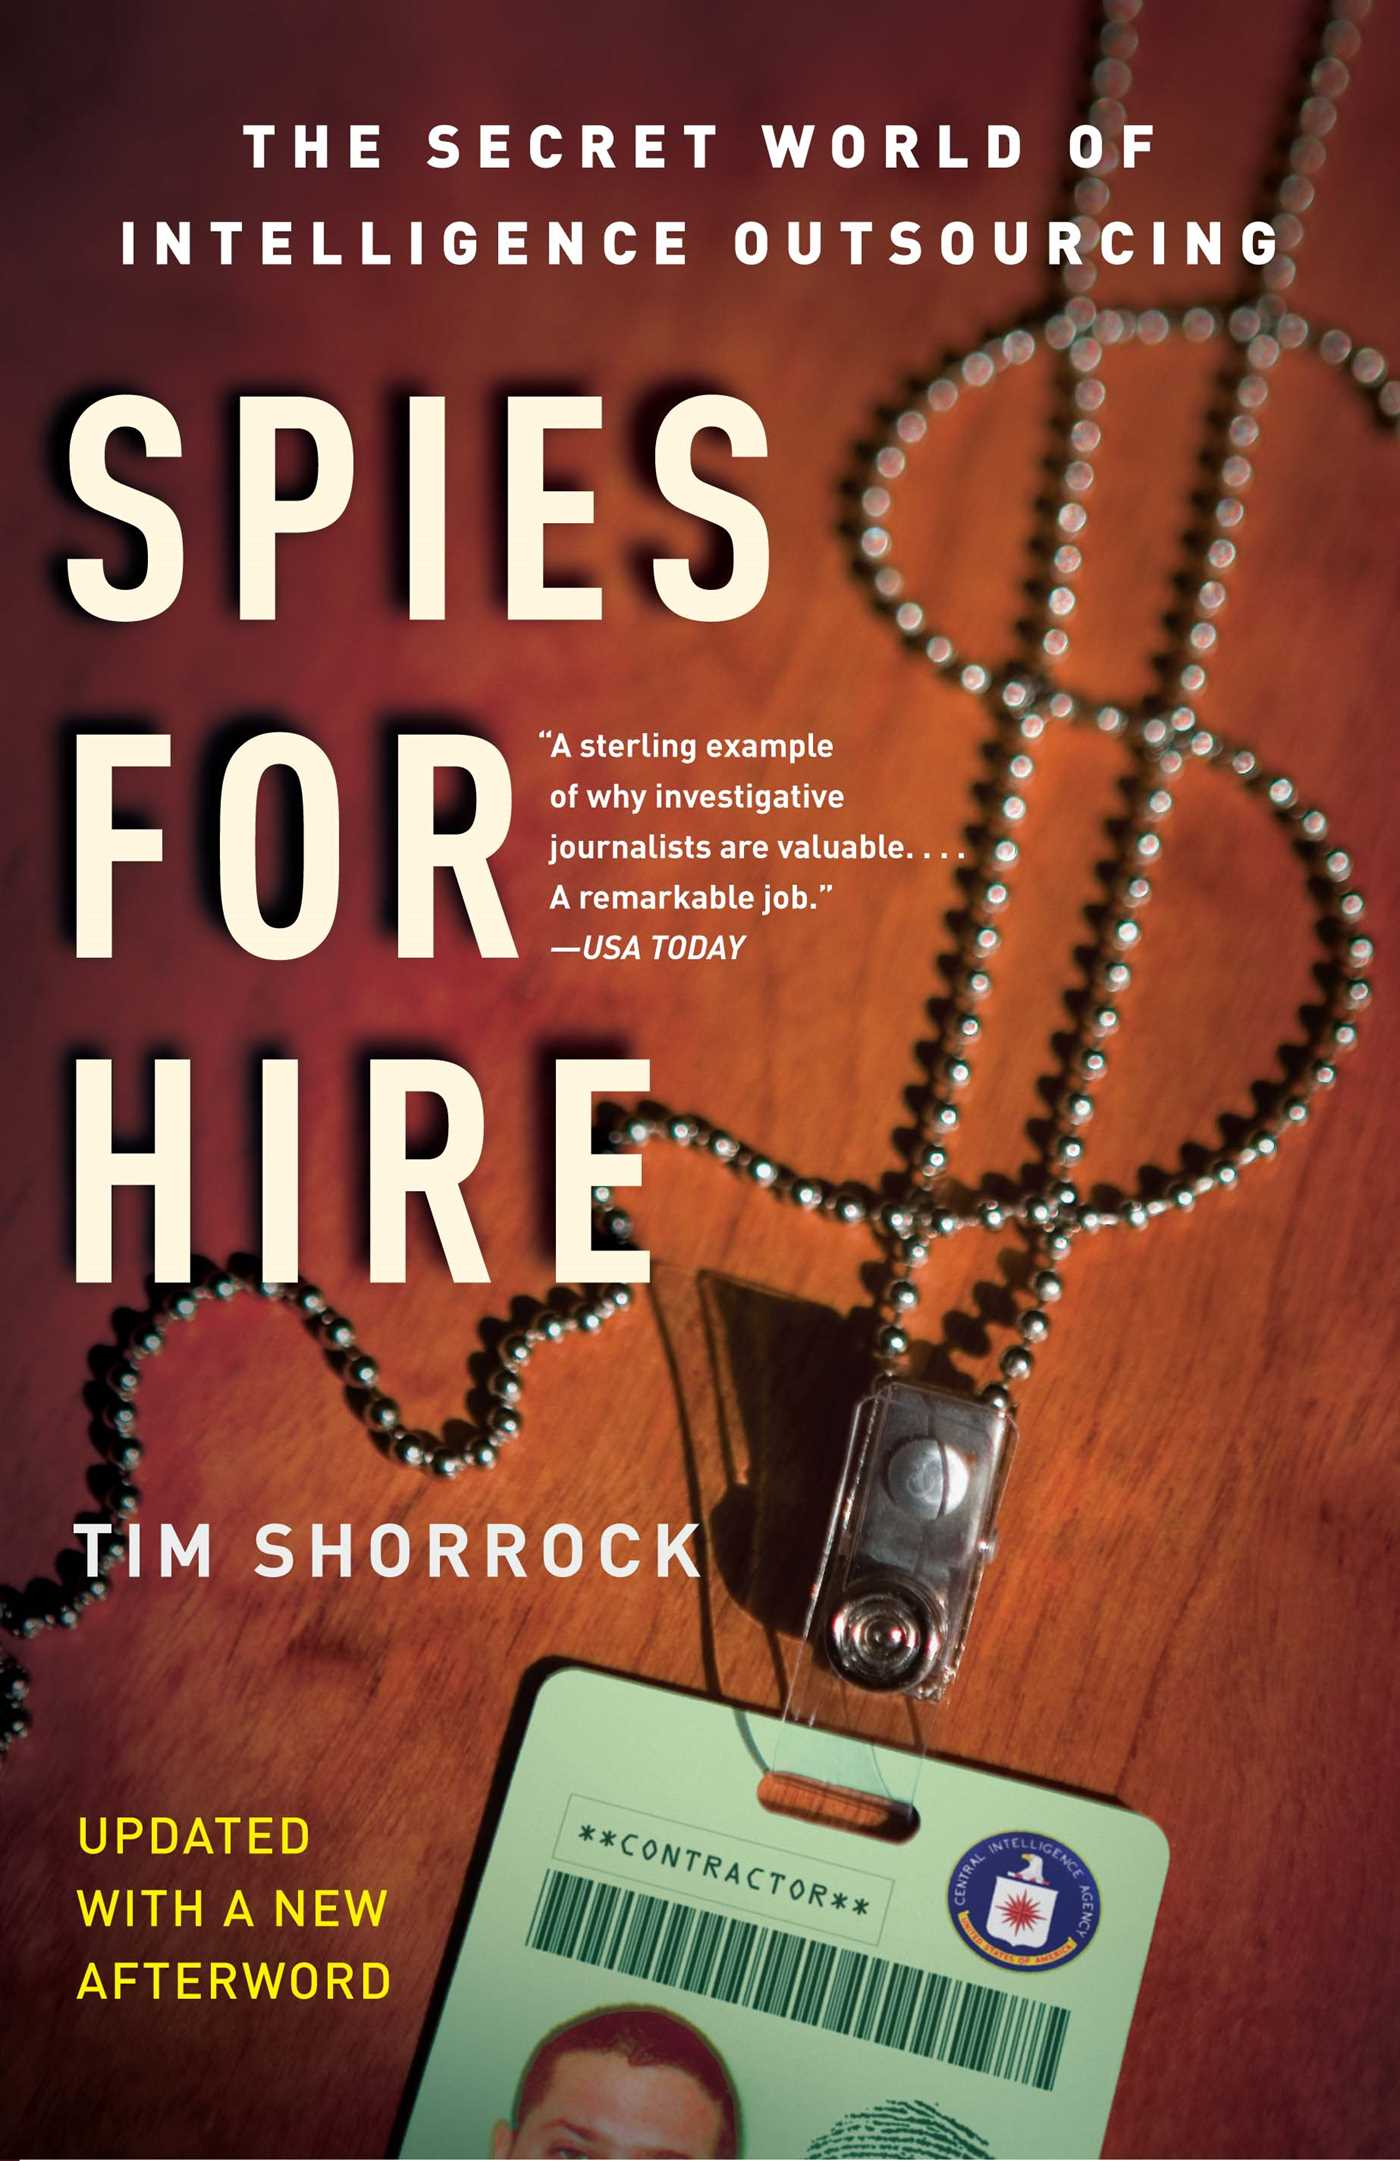 Spies-for-hire-9780743282253_hr